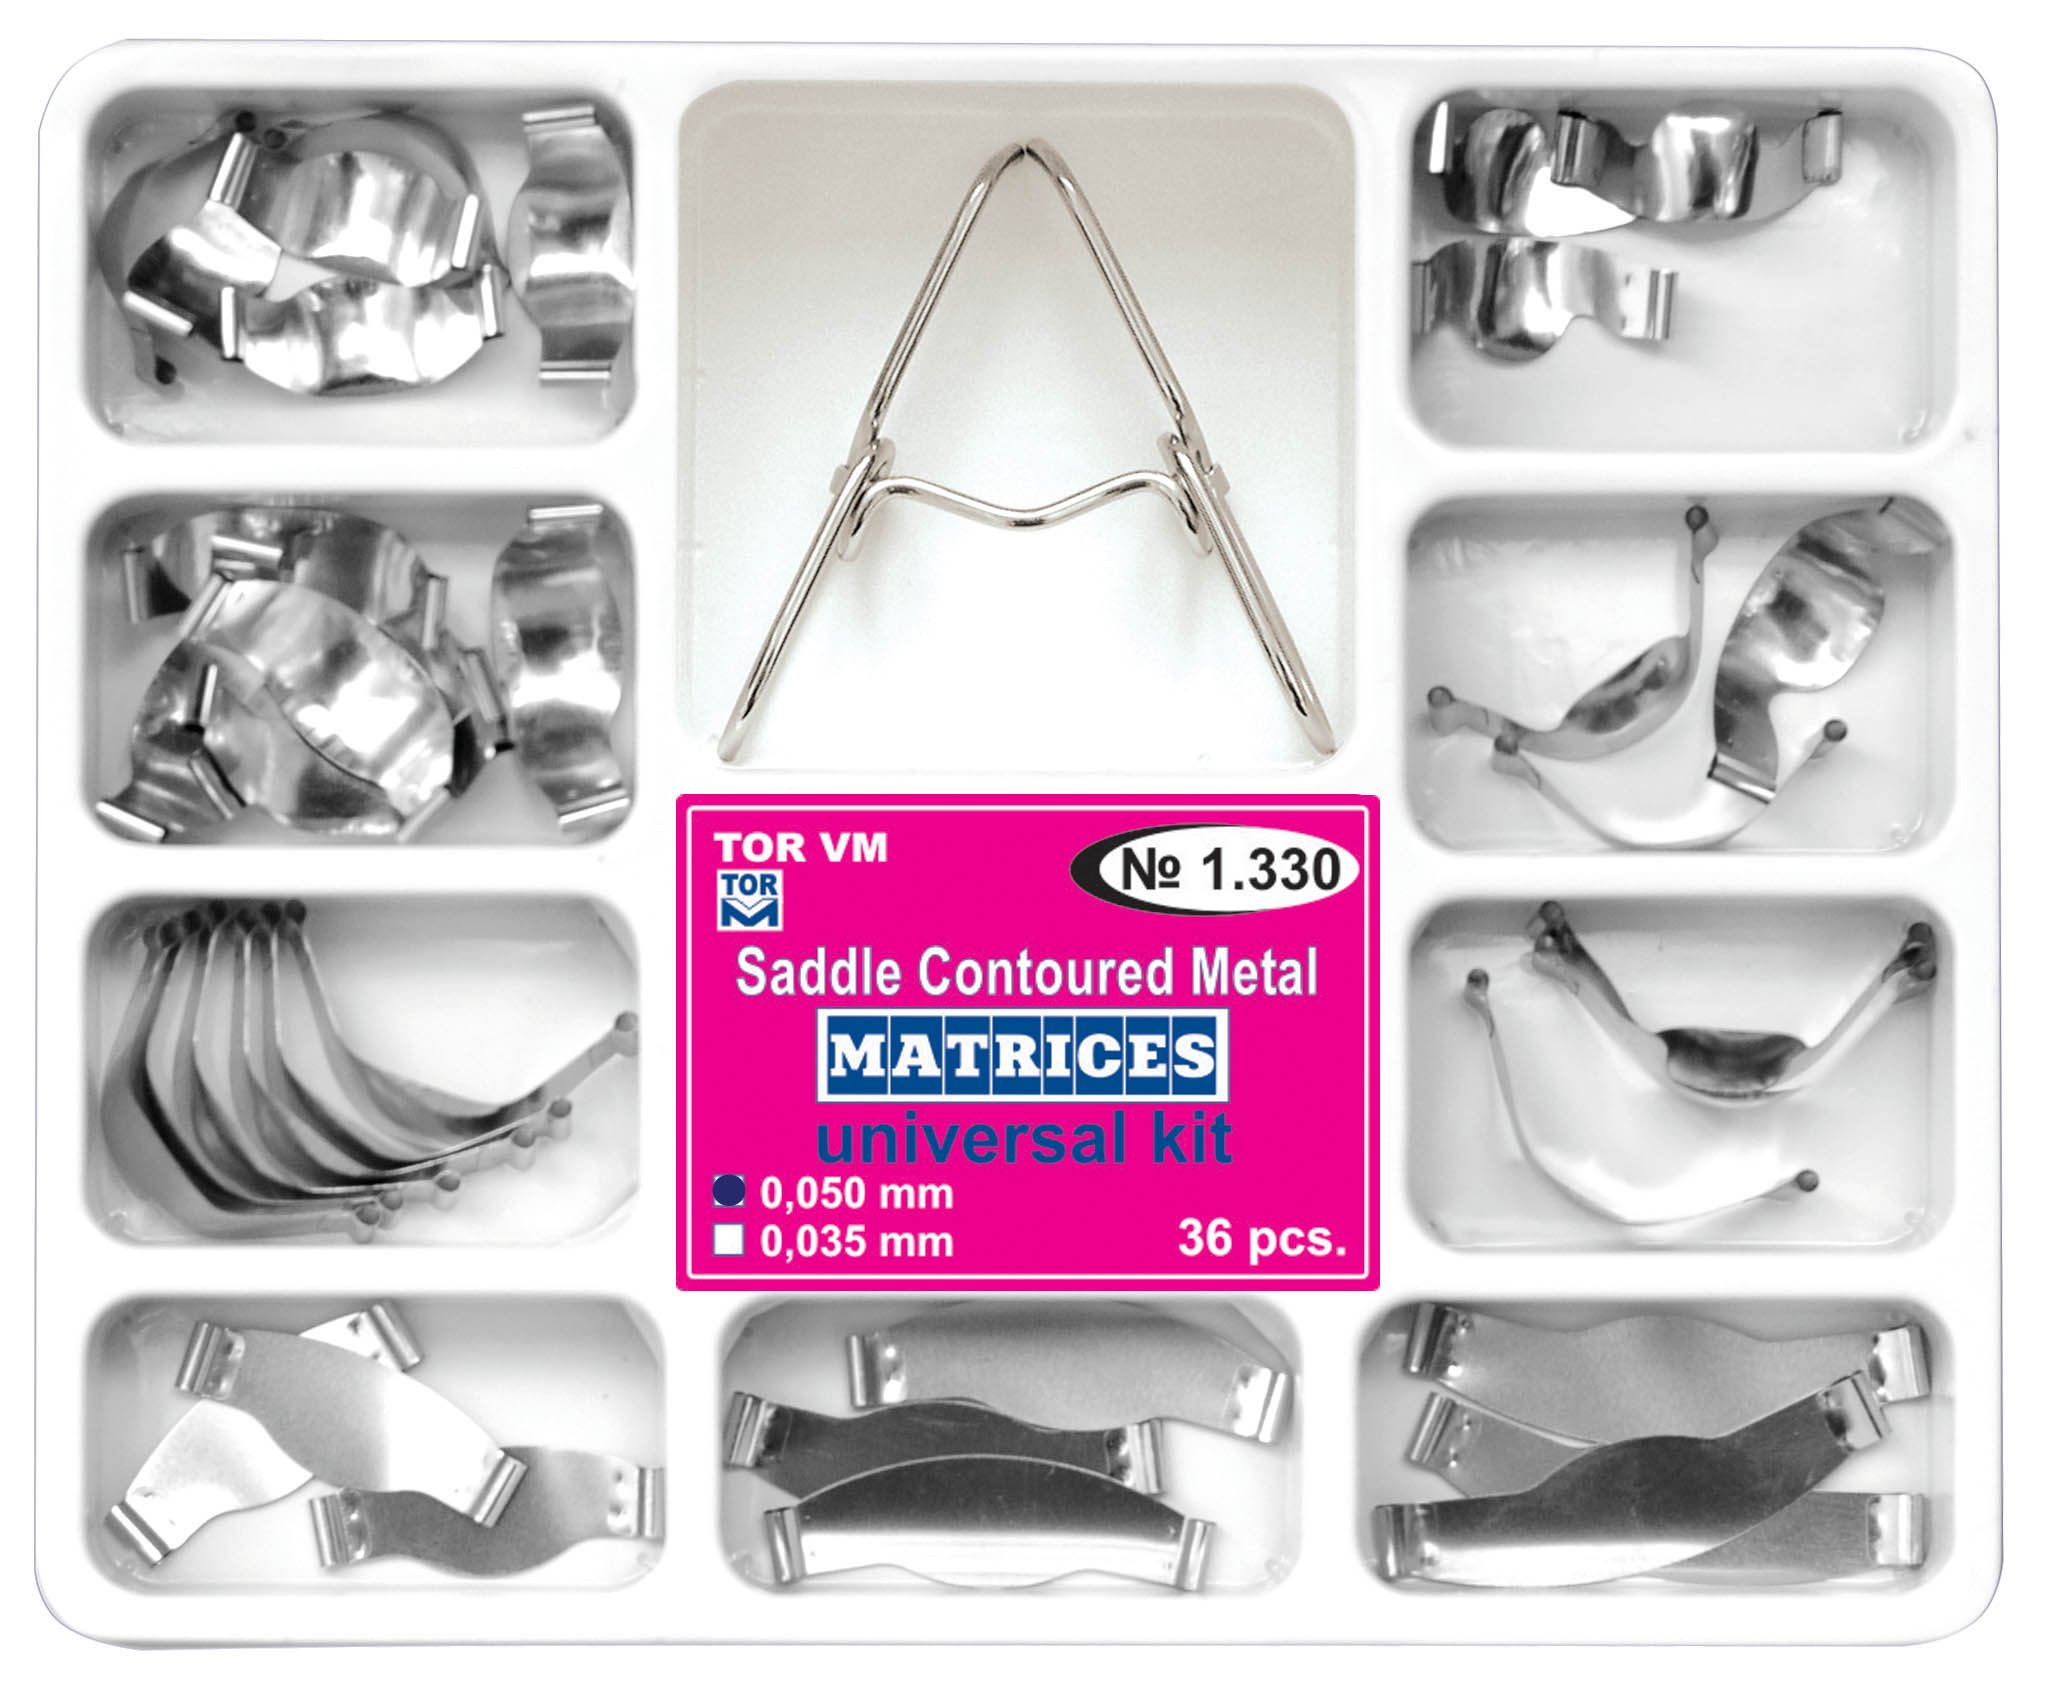 Dental Saddle Contoured Metal Matrices Matrix Universal Kit with Springclip 36 pcs/pack